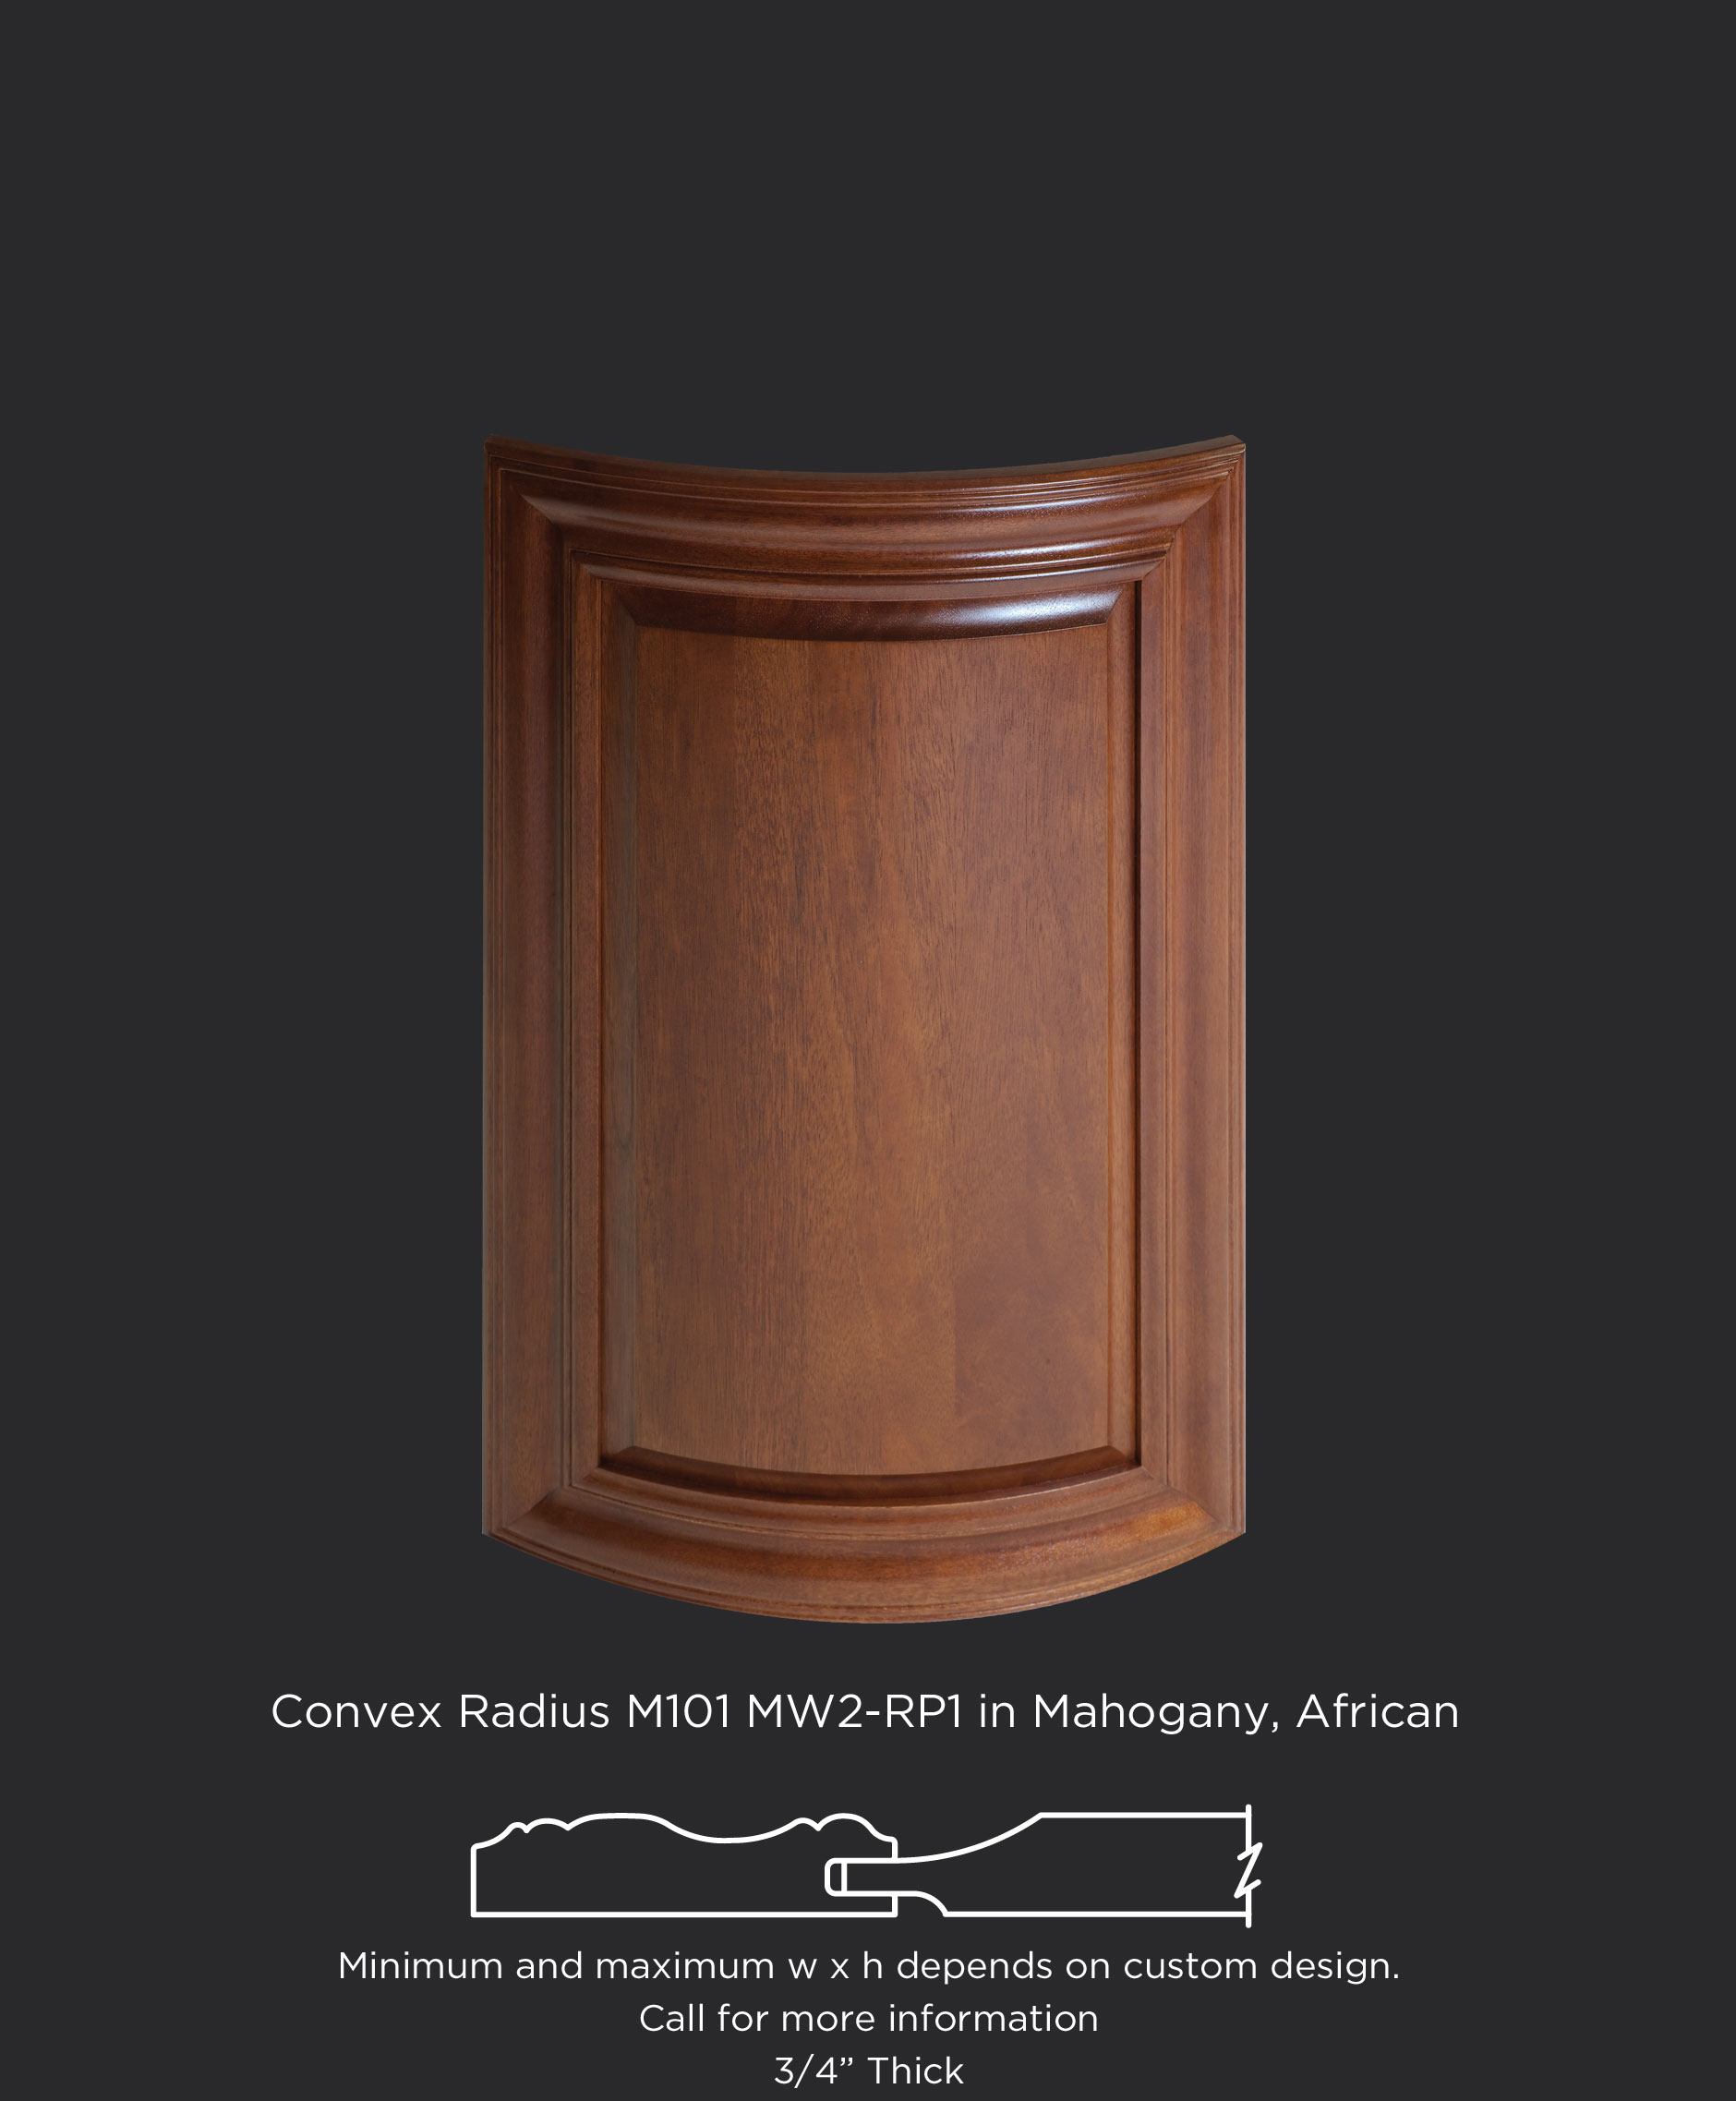 Convex radius mitered cabinet door with MW2-RP1 in African Mahogany